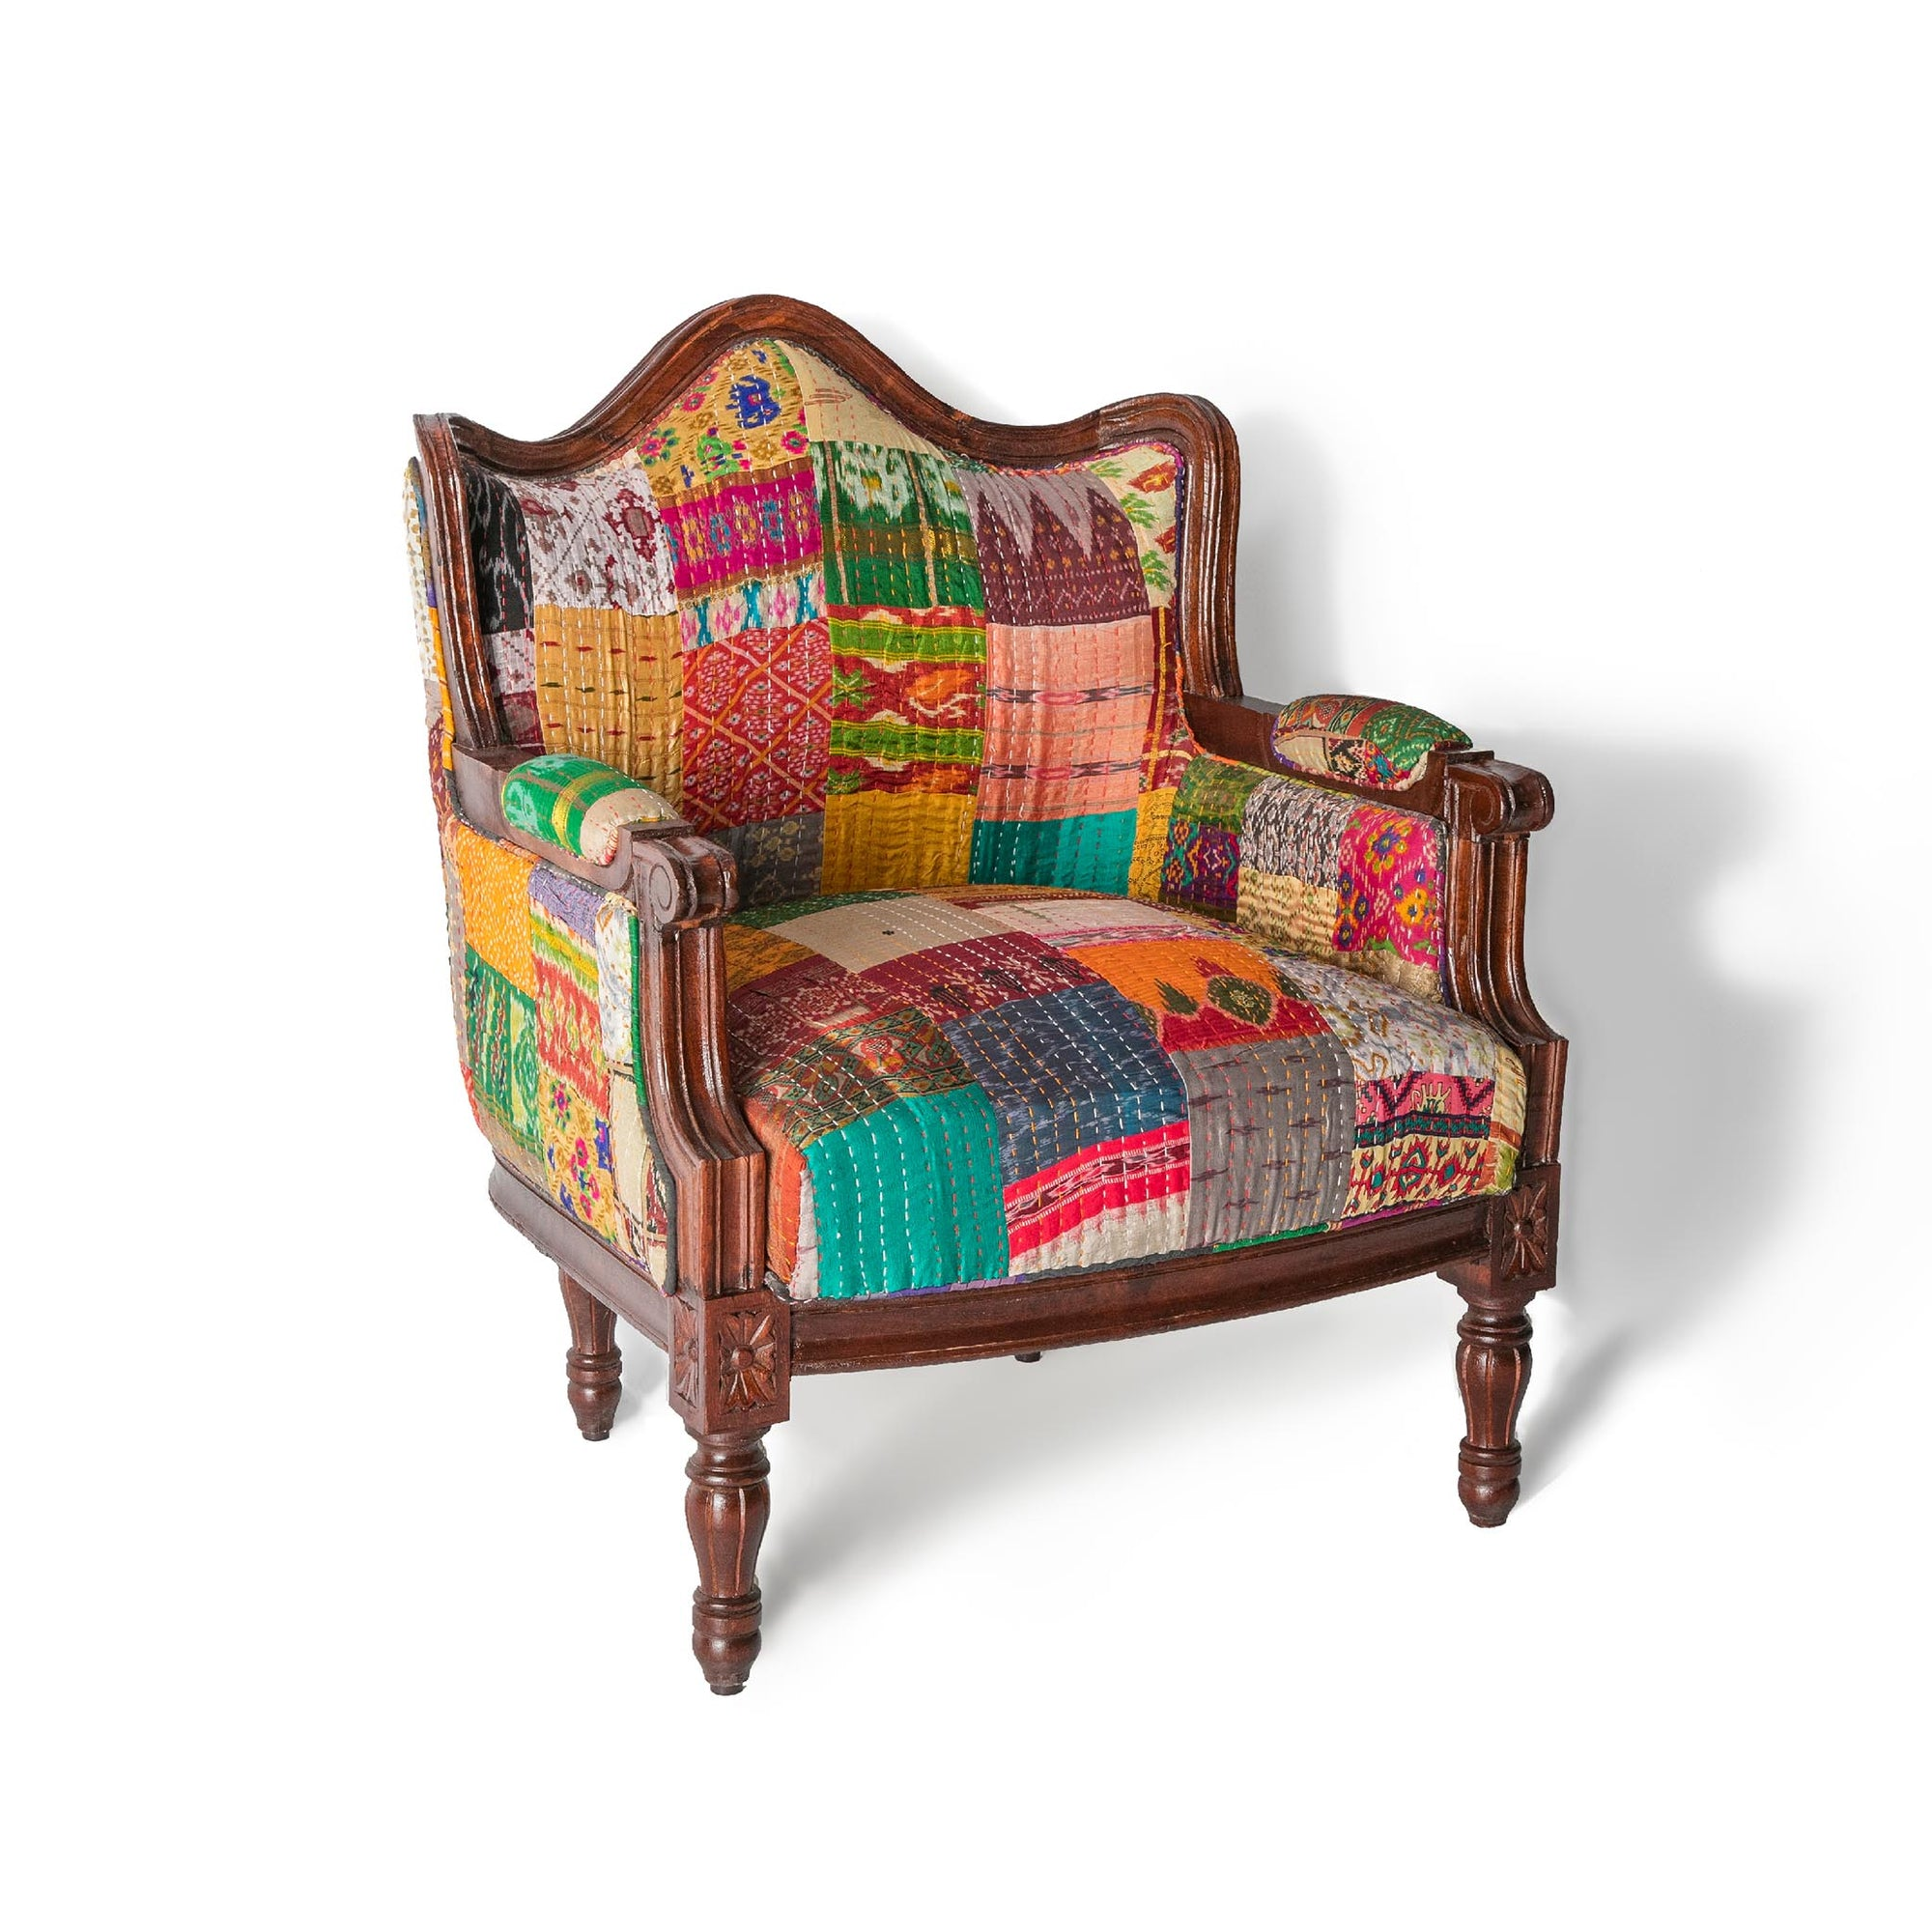 Kantha dark framed chair with a vibrant patchwork patterned fabric by Roseland Furniture